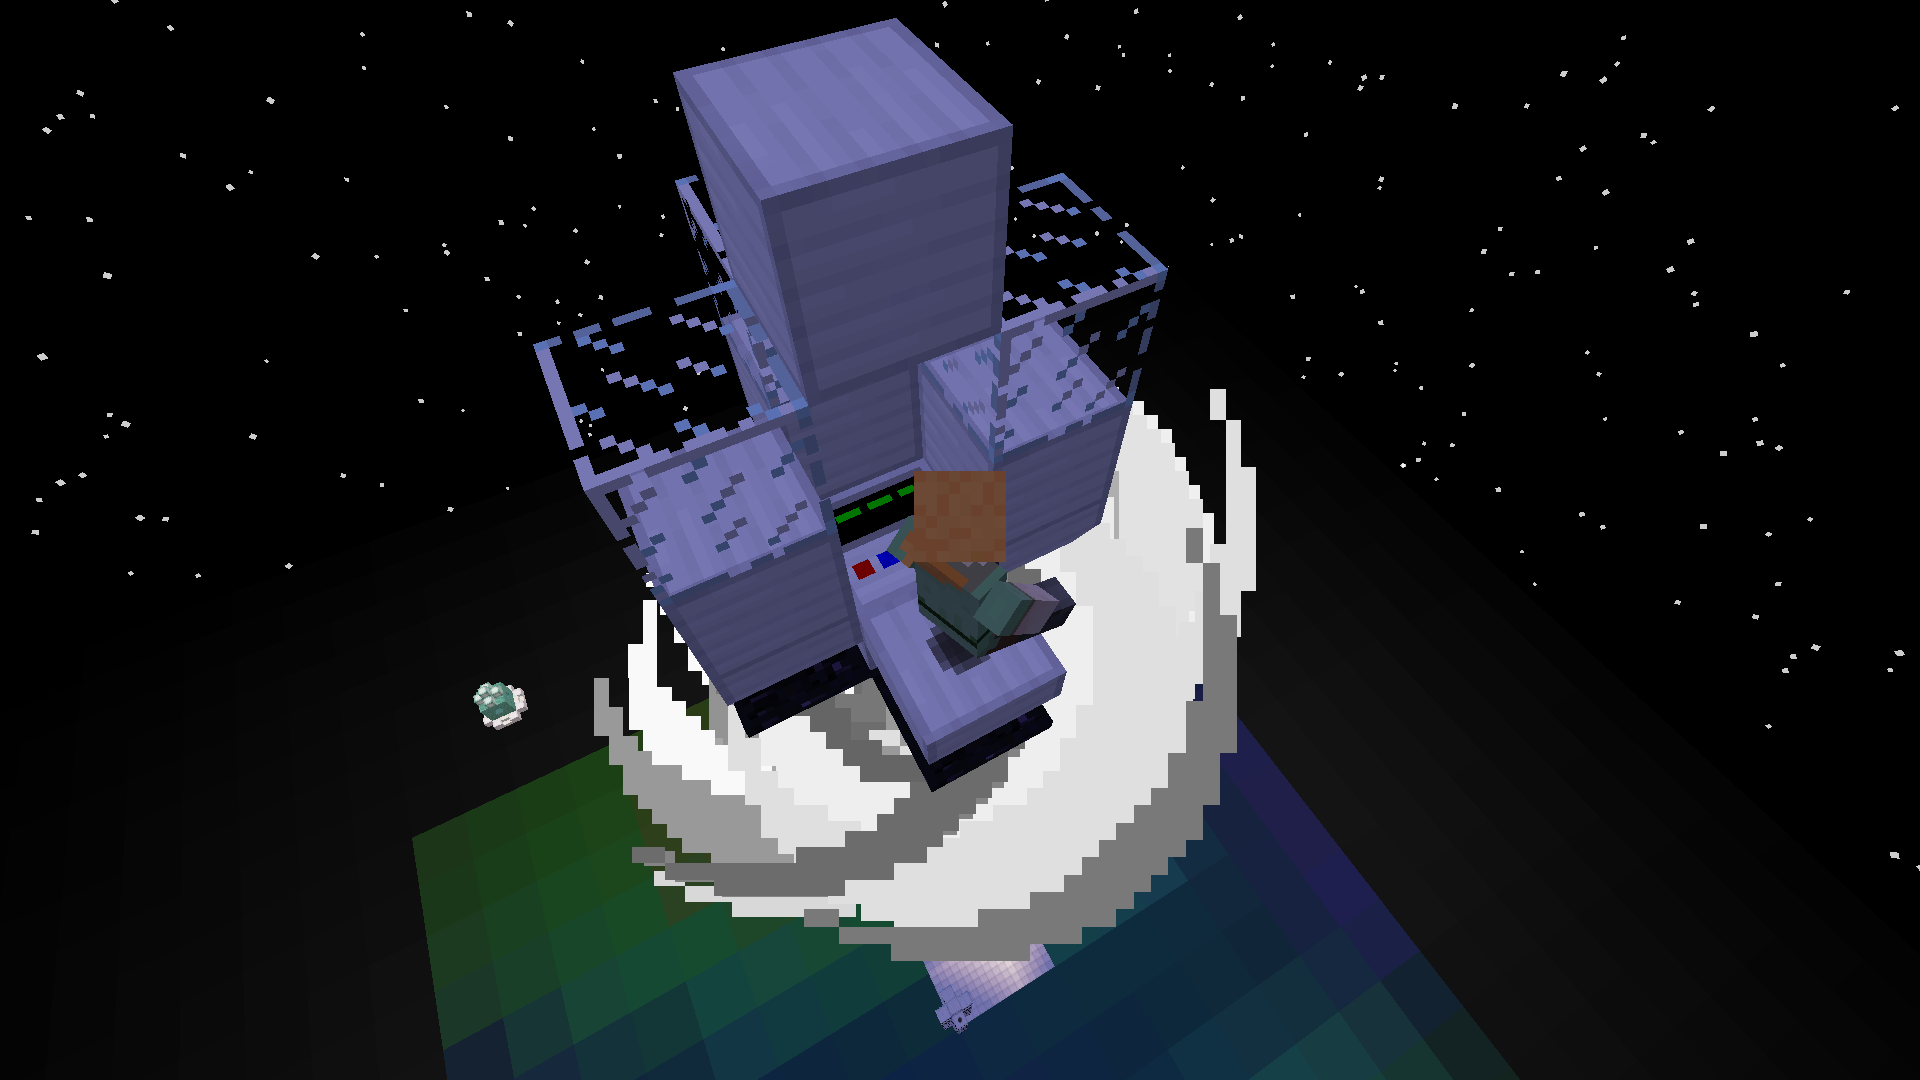 Moon Mod Renewal - Minecraft Mods - Mapping and Modding ...